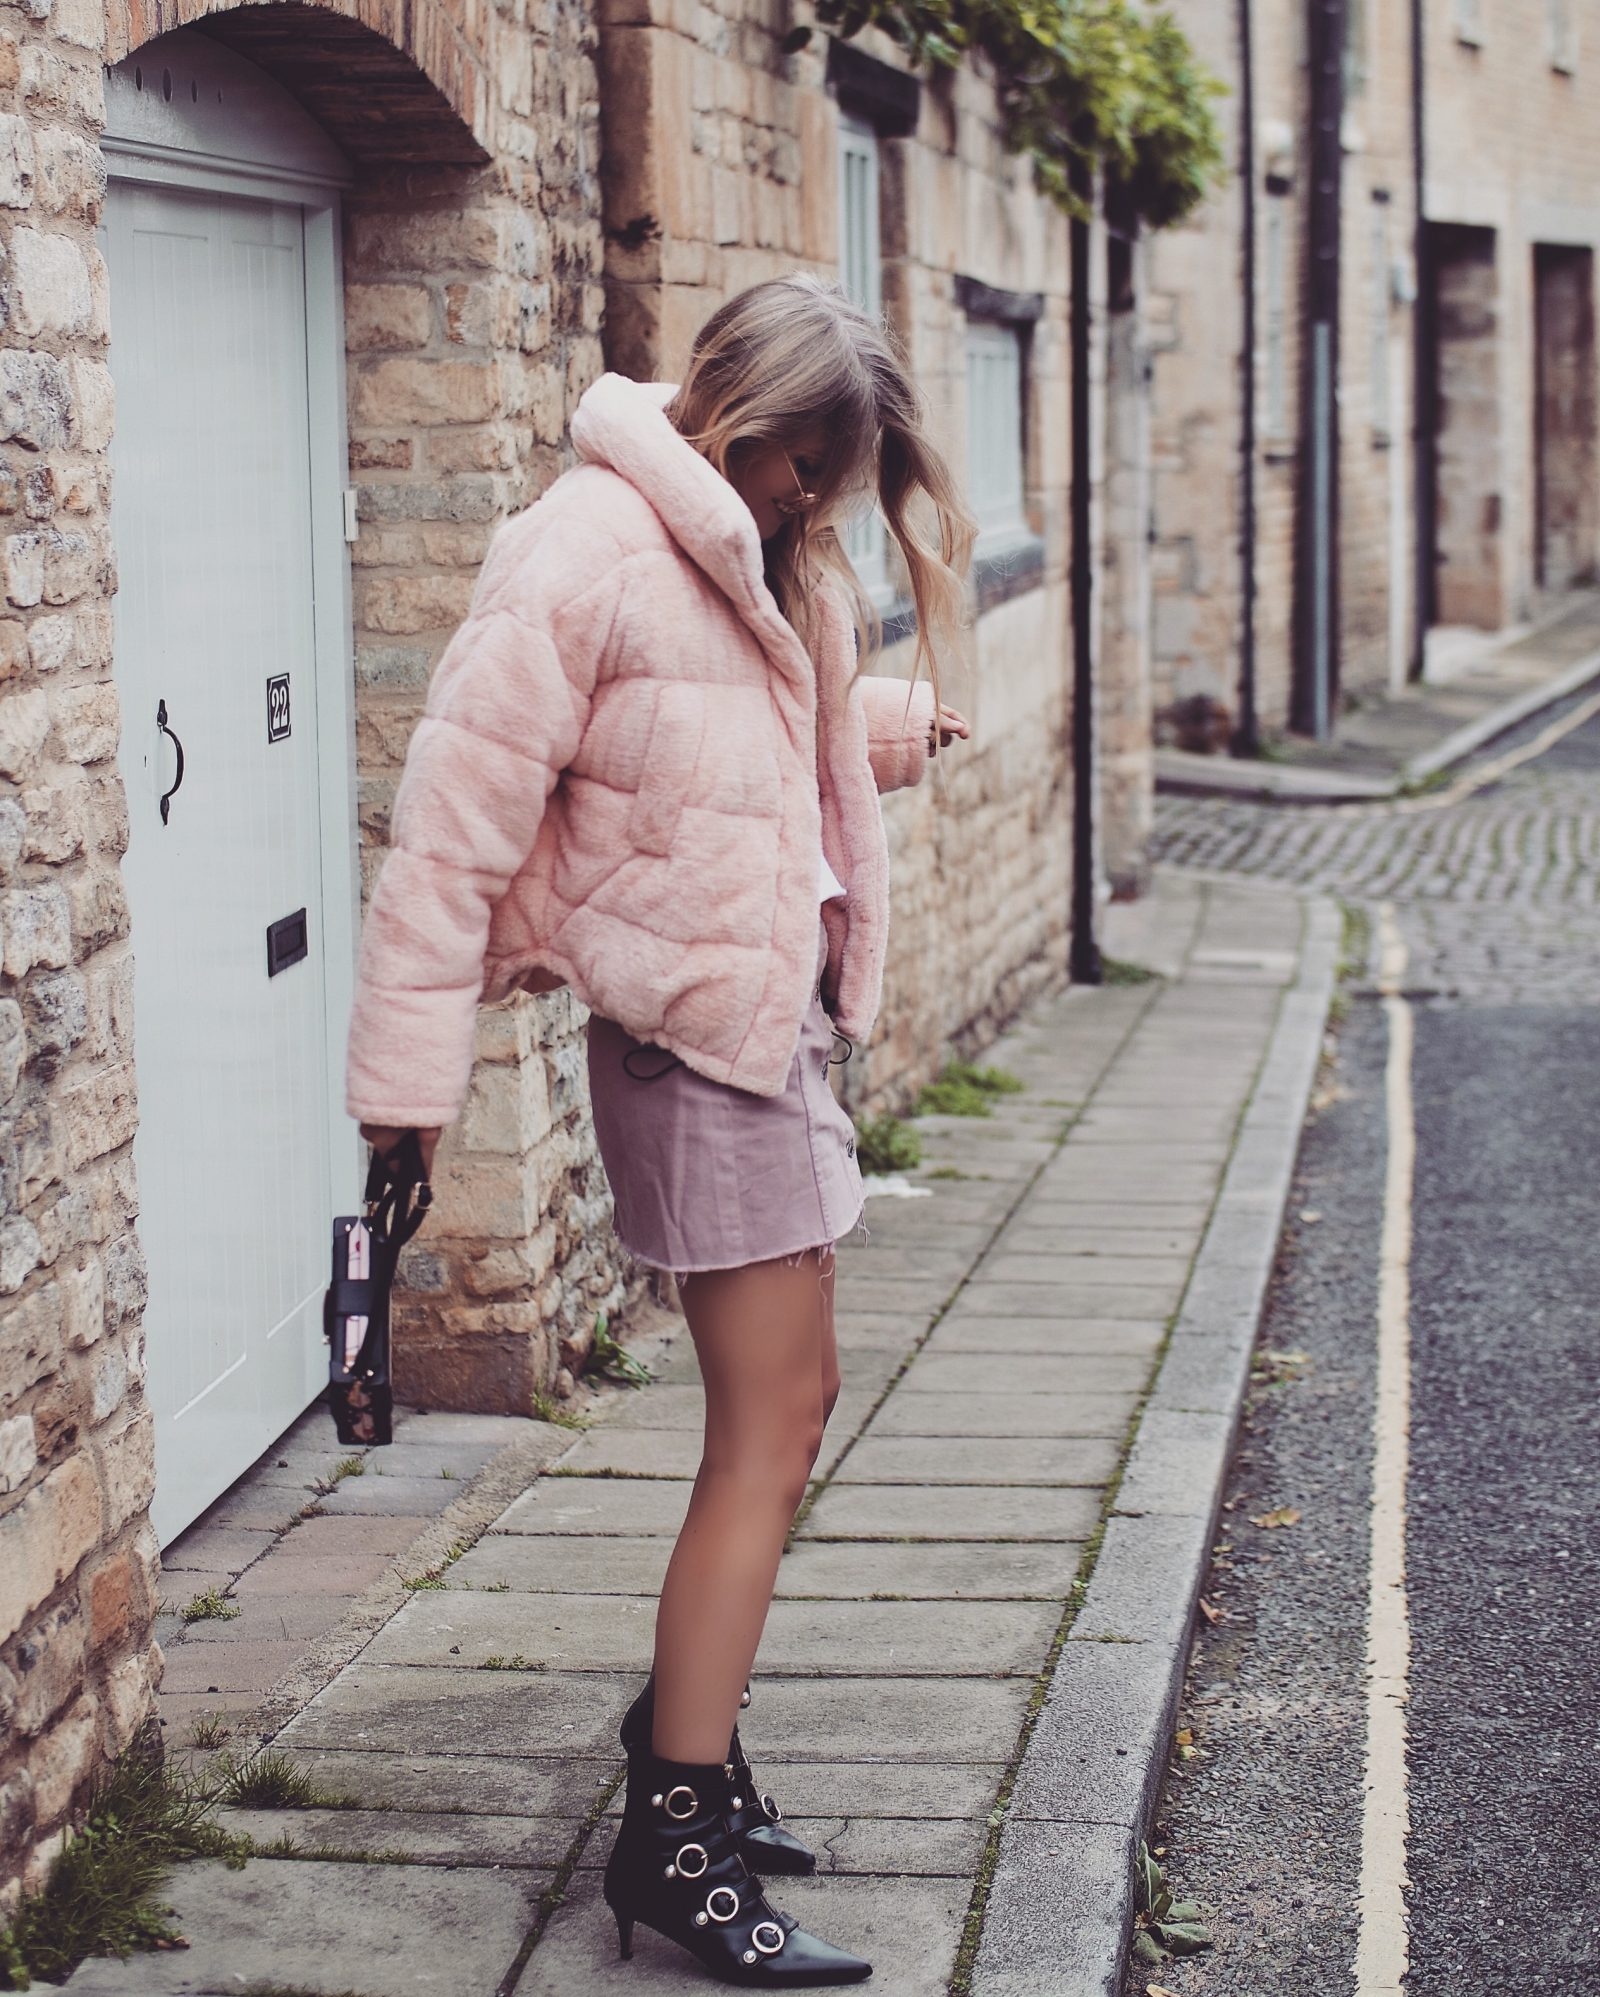 Teddy Puffa Jacket - All Pink Outfit